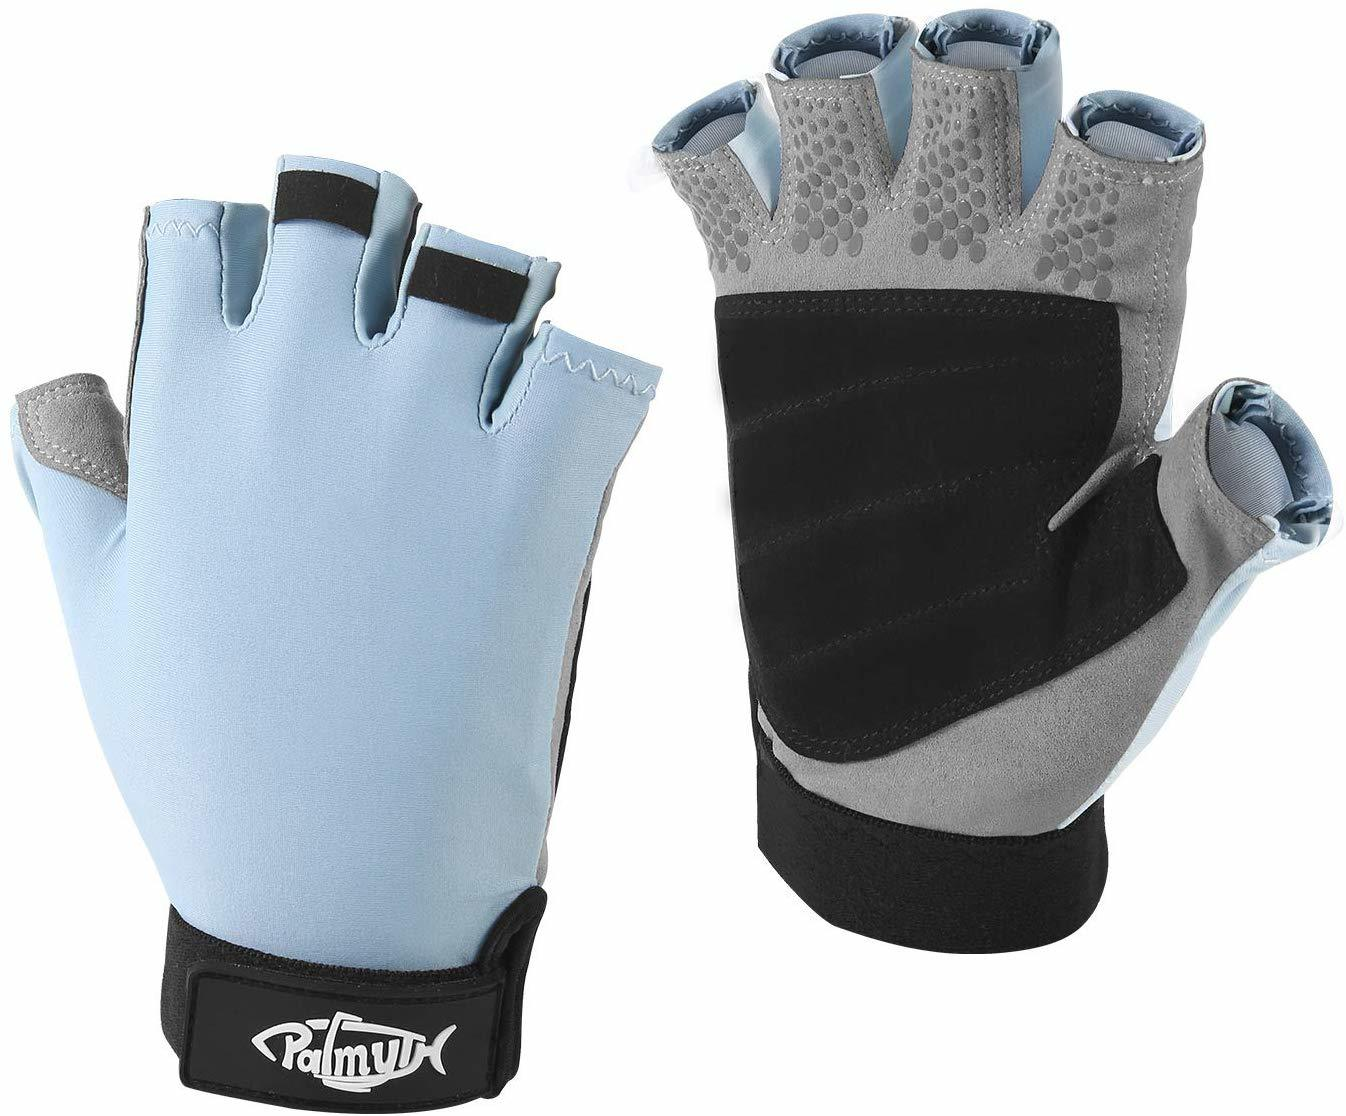 10 Sailing Gloves that will Protect Your Hands While Doing Water Sports 4